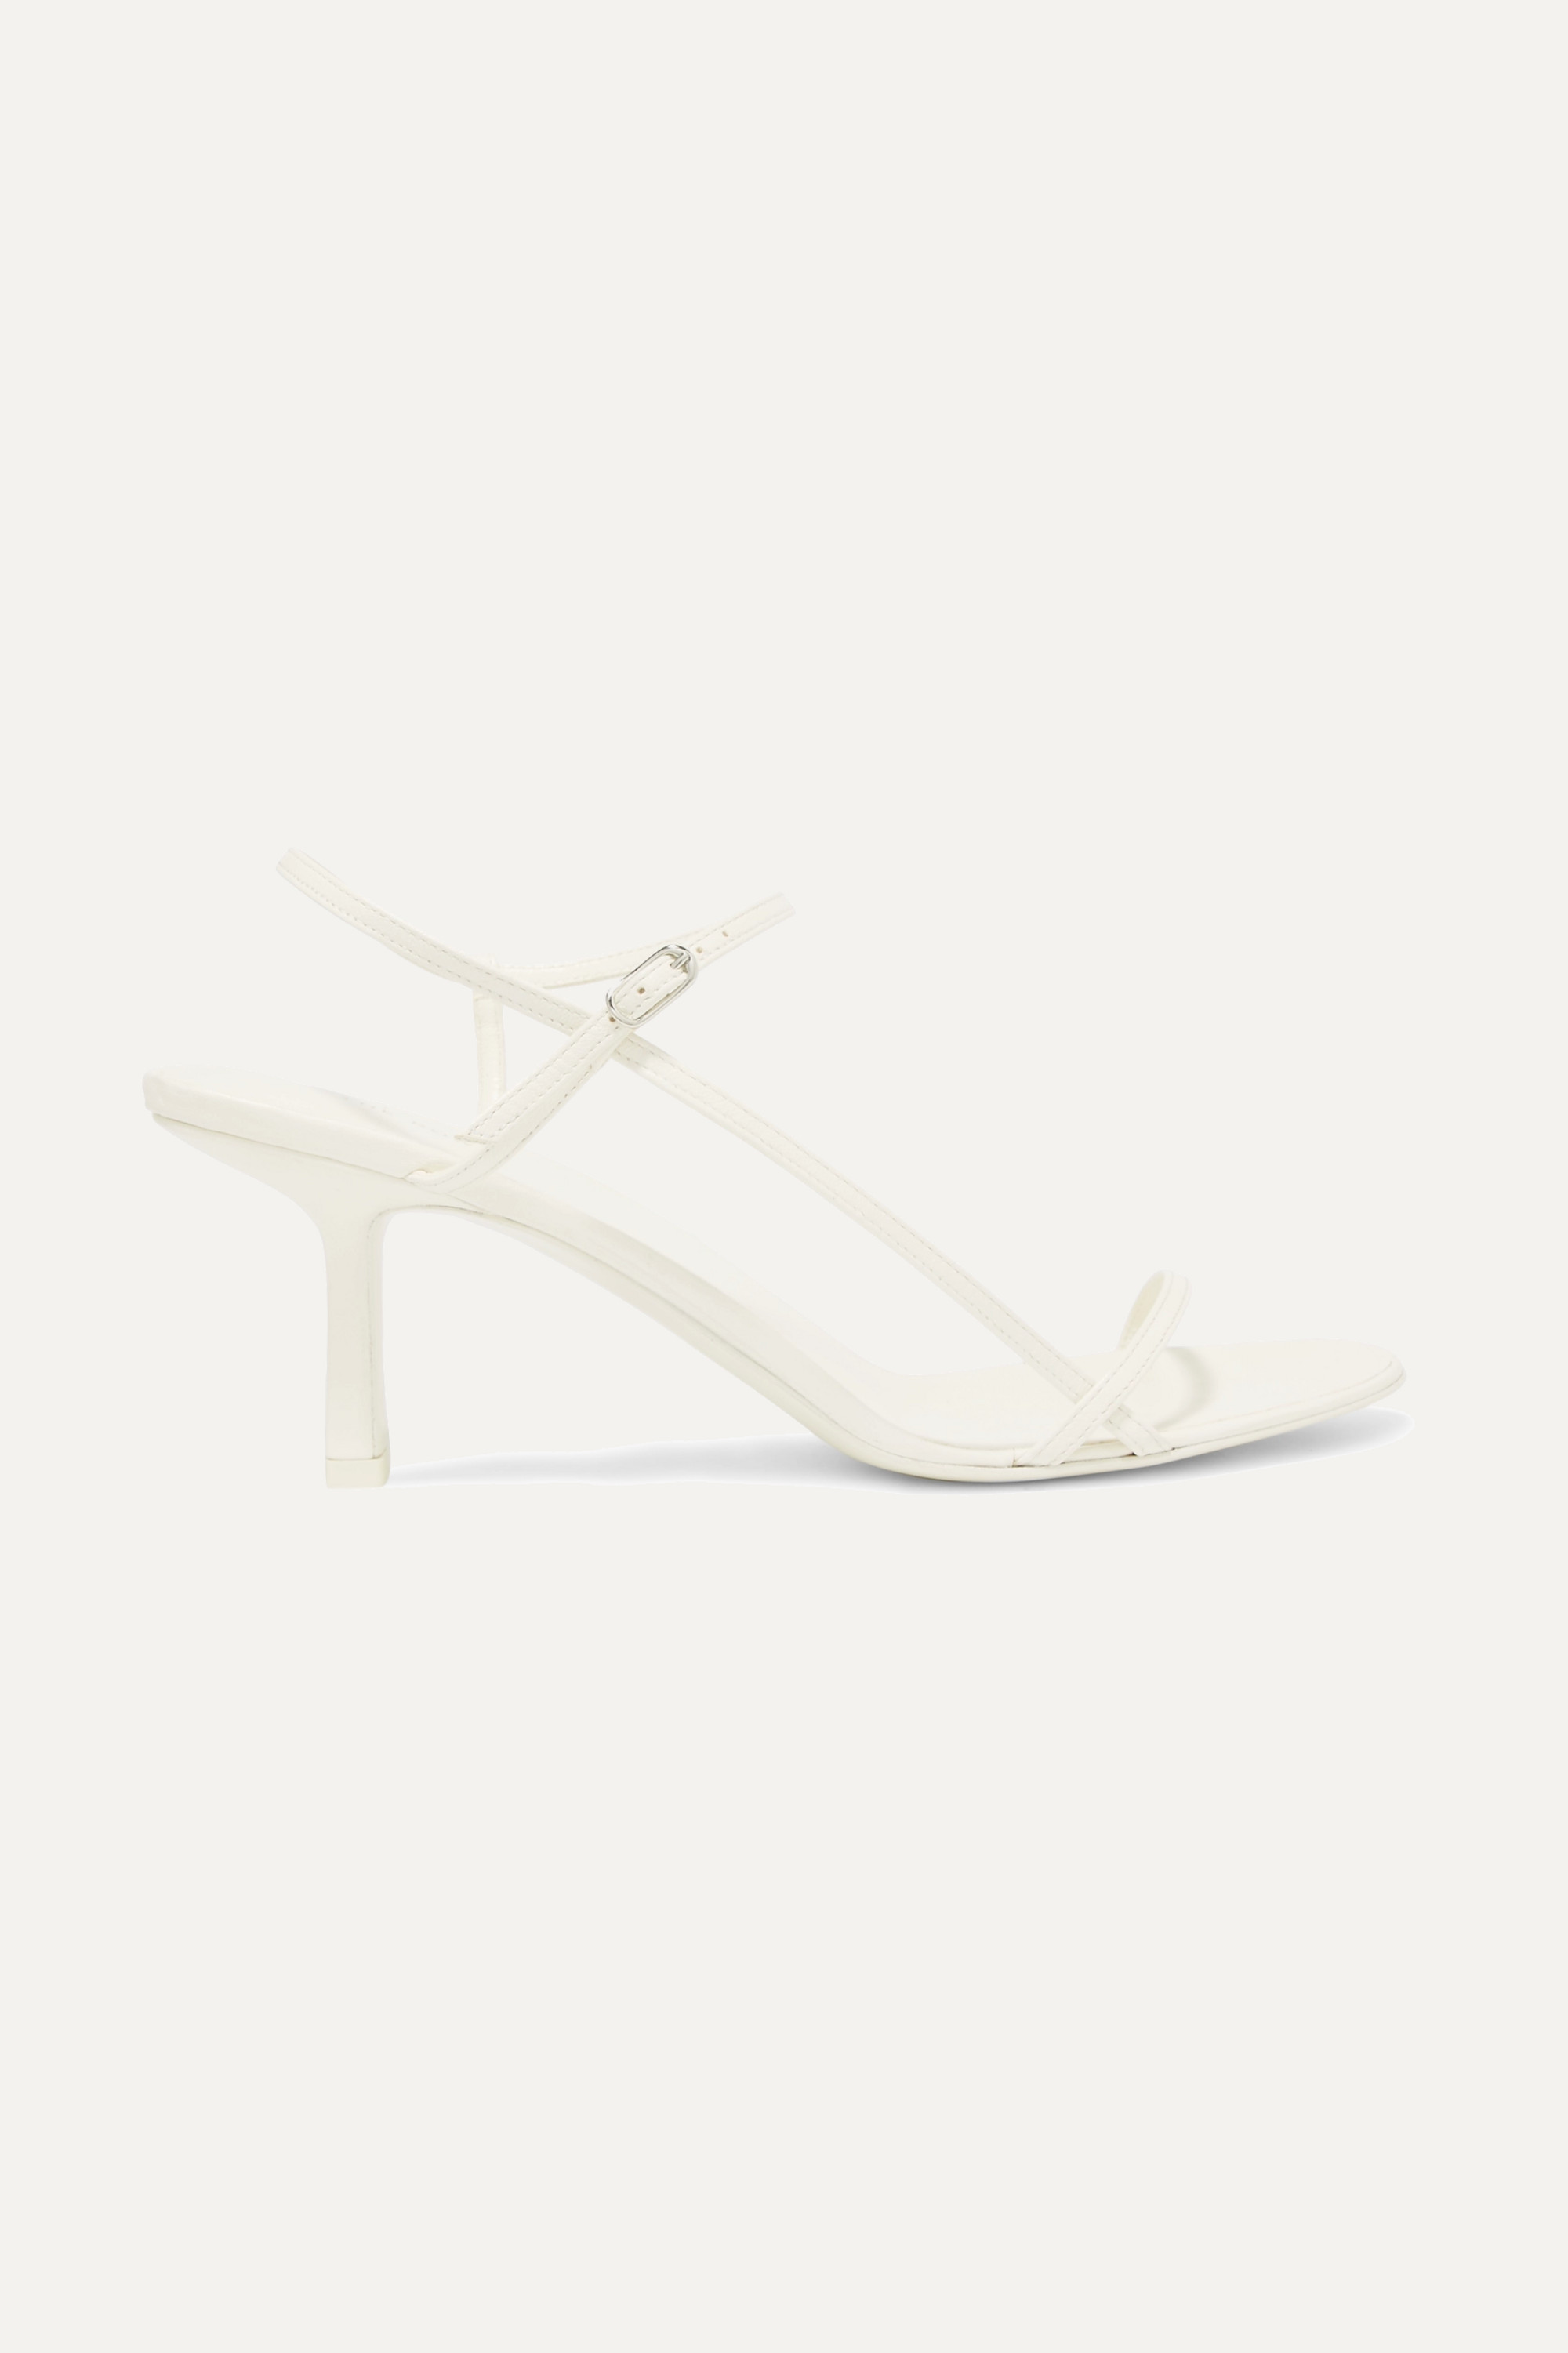 The Row Bare Sandalen aus Leder